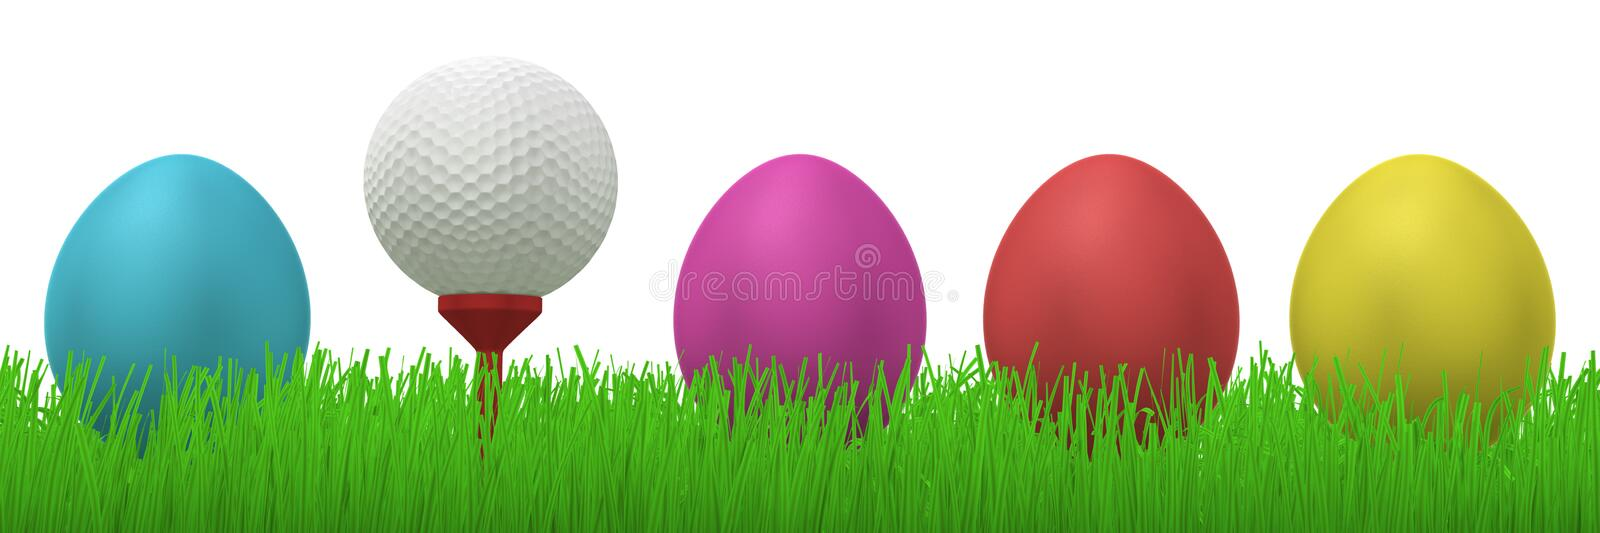 Golfball between easter eggs. 3d illustration of a golfball on a red tee between four colorful easter eggs in grass vector illustration